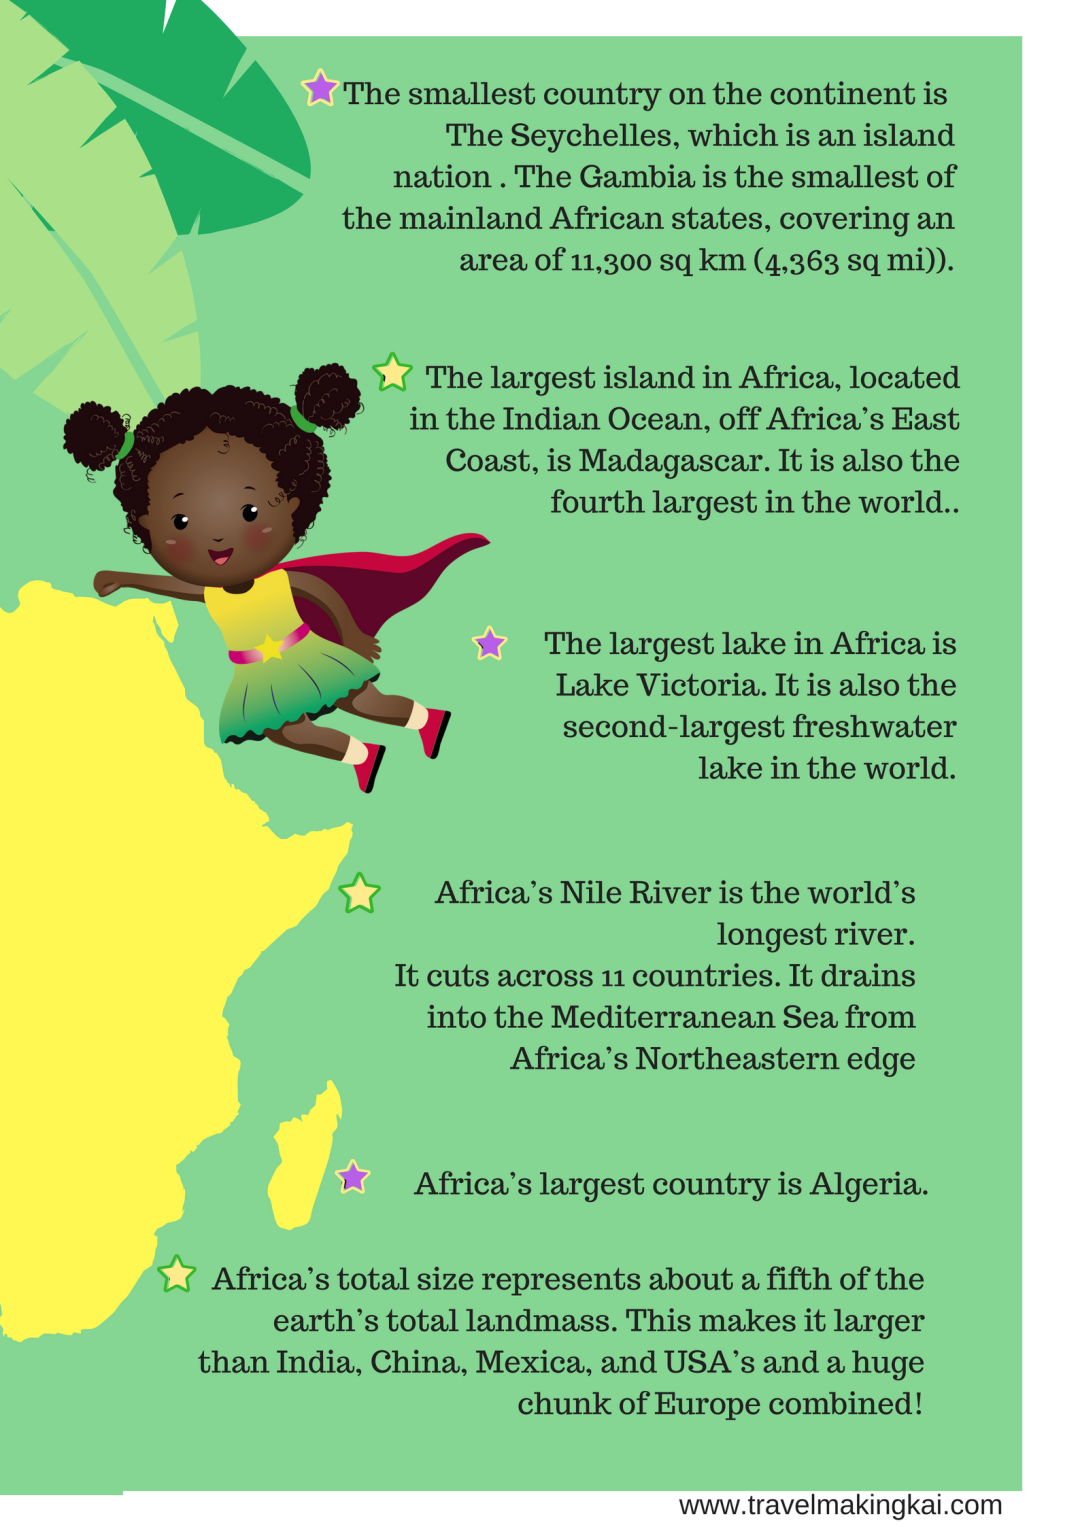 Africa 12 Facts2 TMK